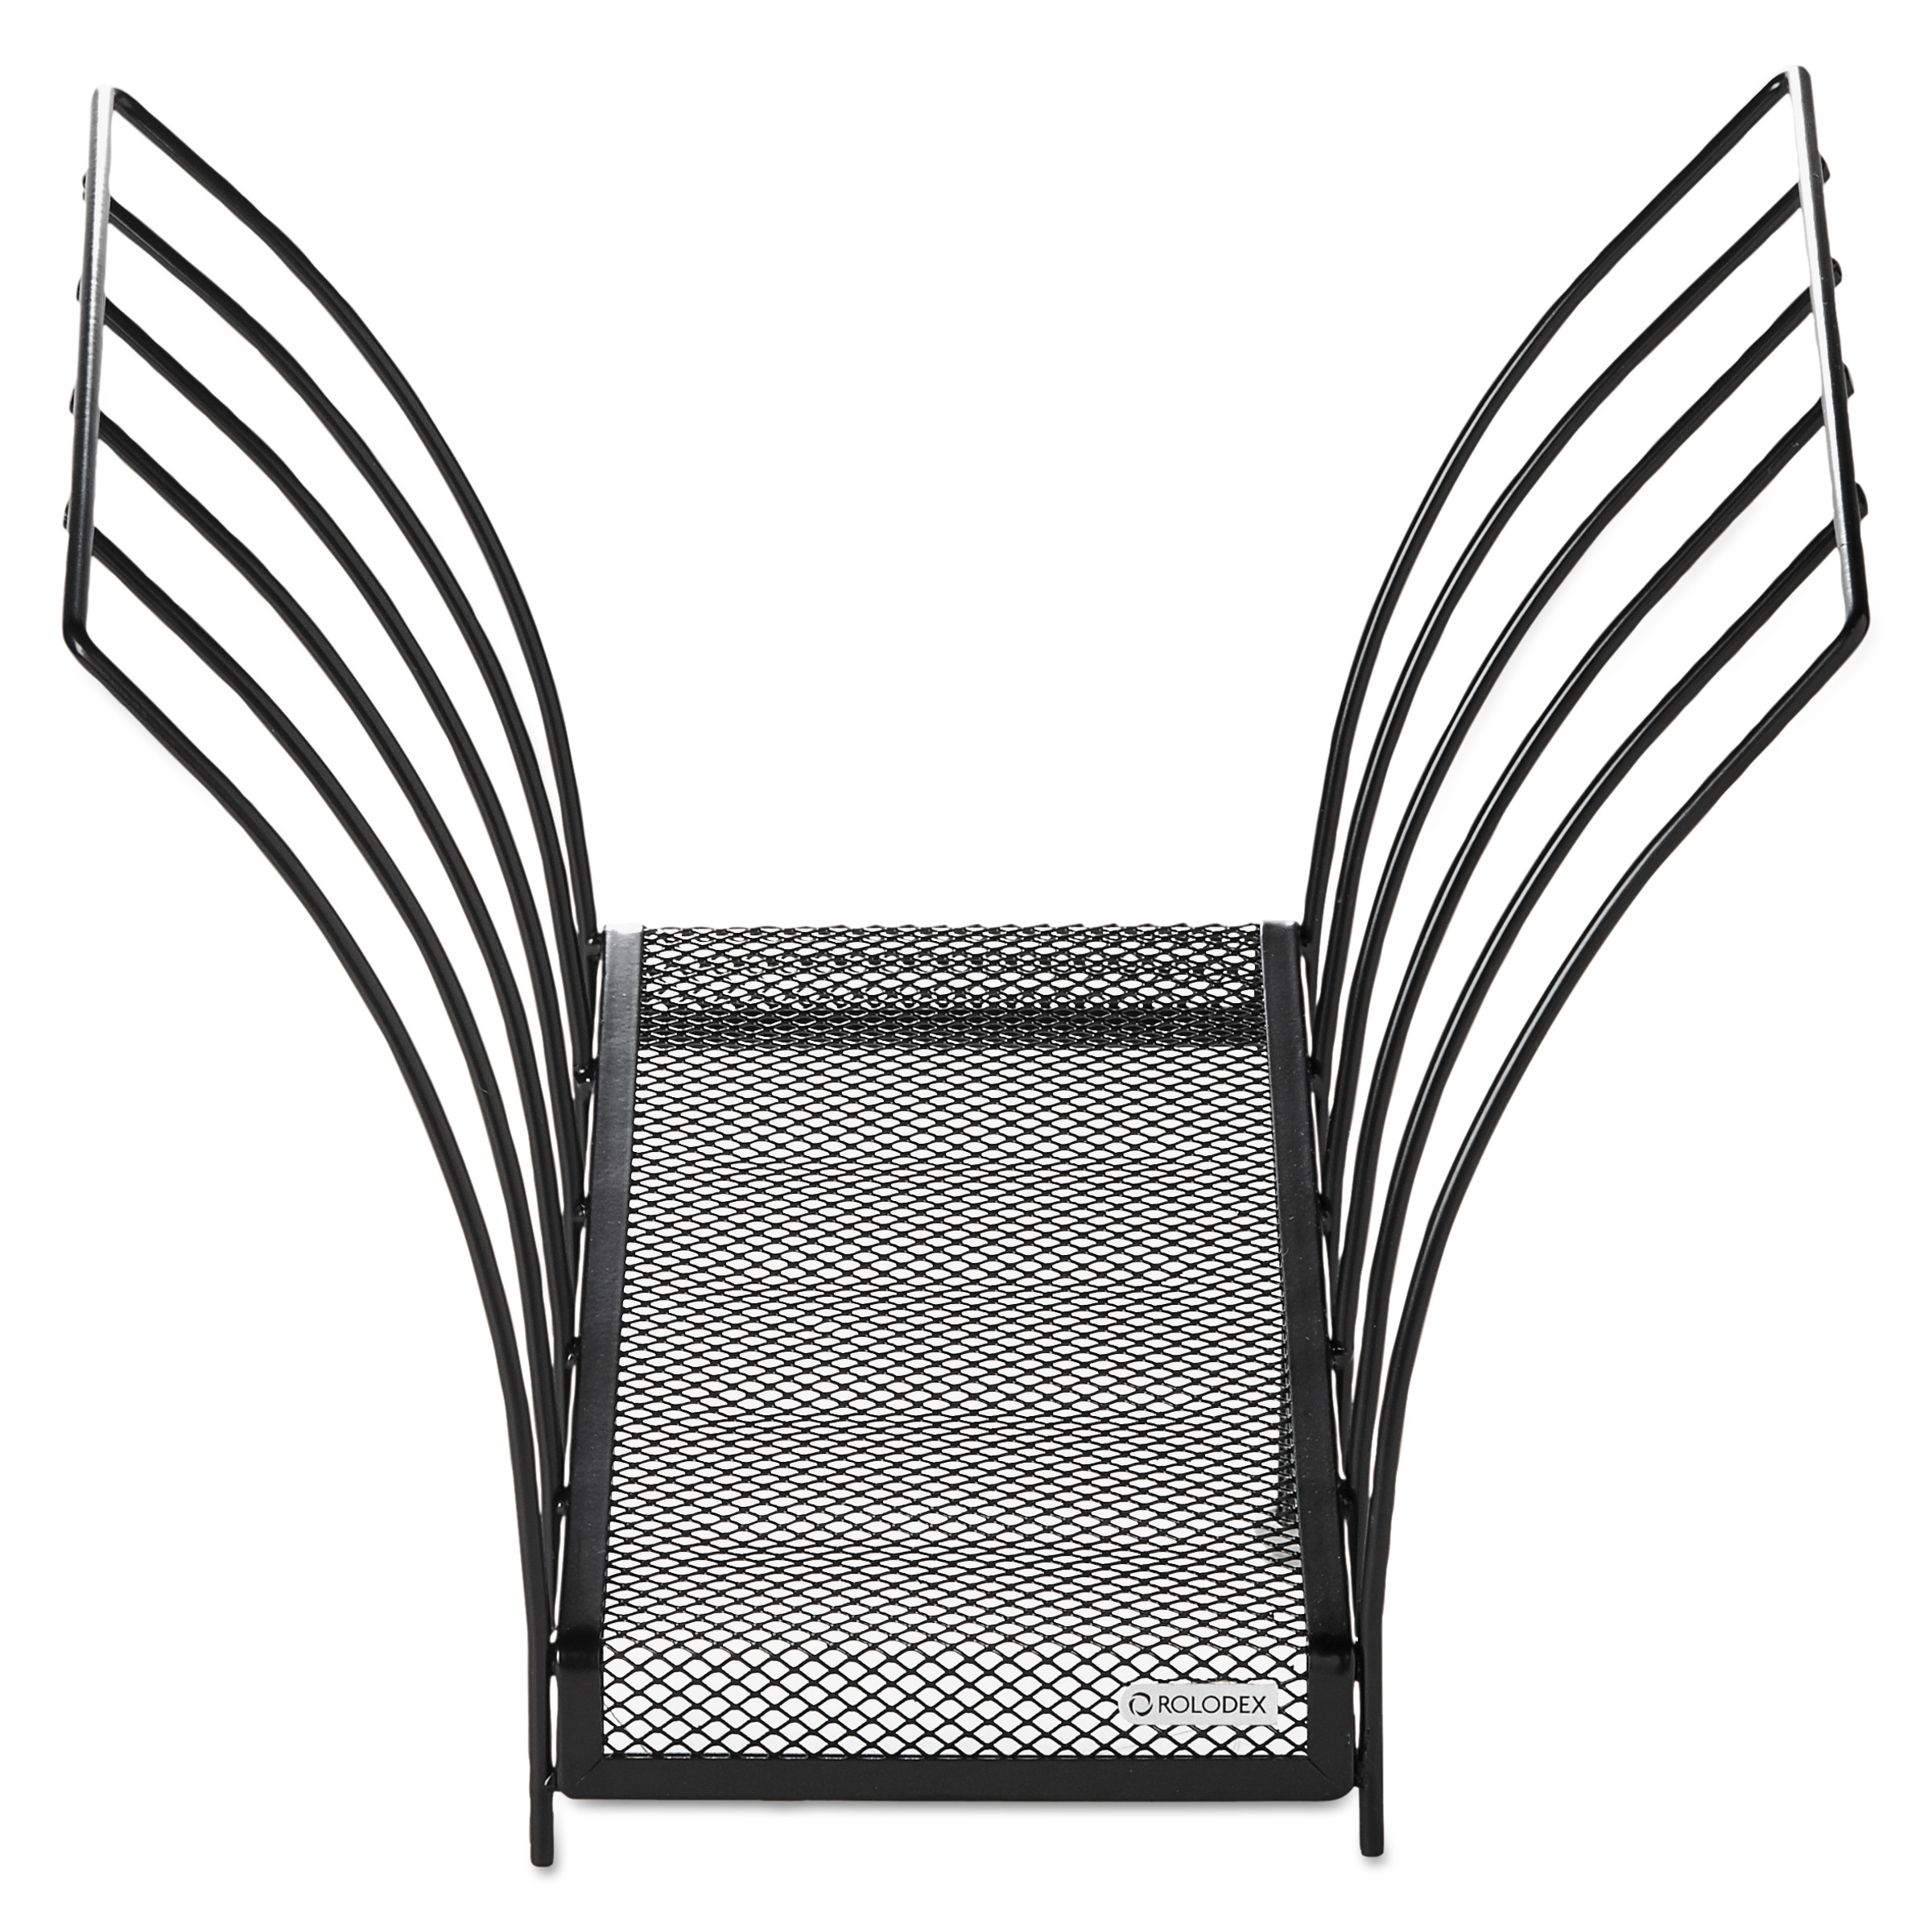 Rolodex Butterfly File Sorter, Five Sections, Mesh, 12 x 7 1/2 x 10, Black